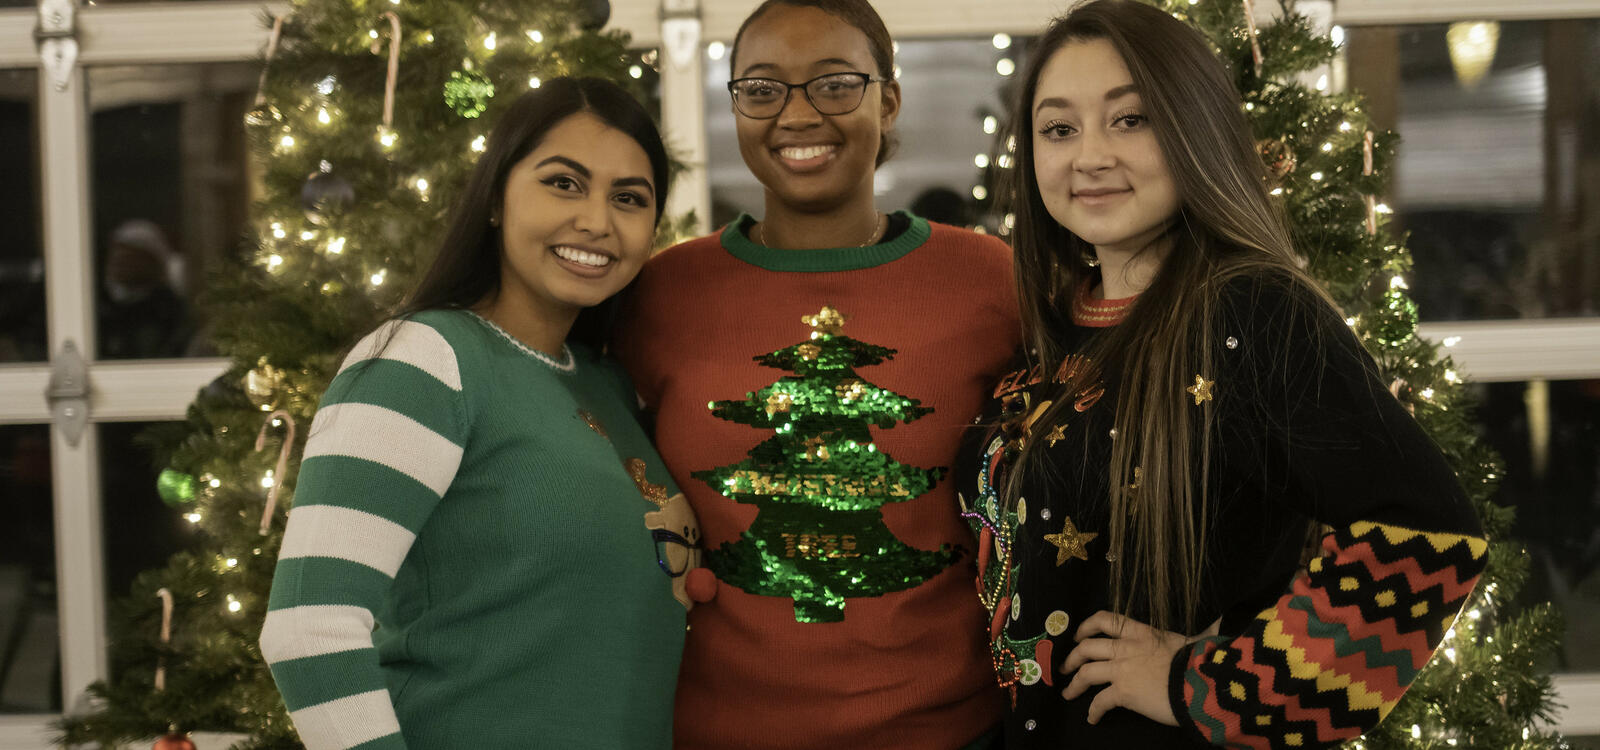 Three young ladies smiling, wearing red and greenn Christmas sweaters, standing together in front of two decorated Christmas trees with their arms around eachother